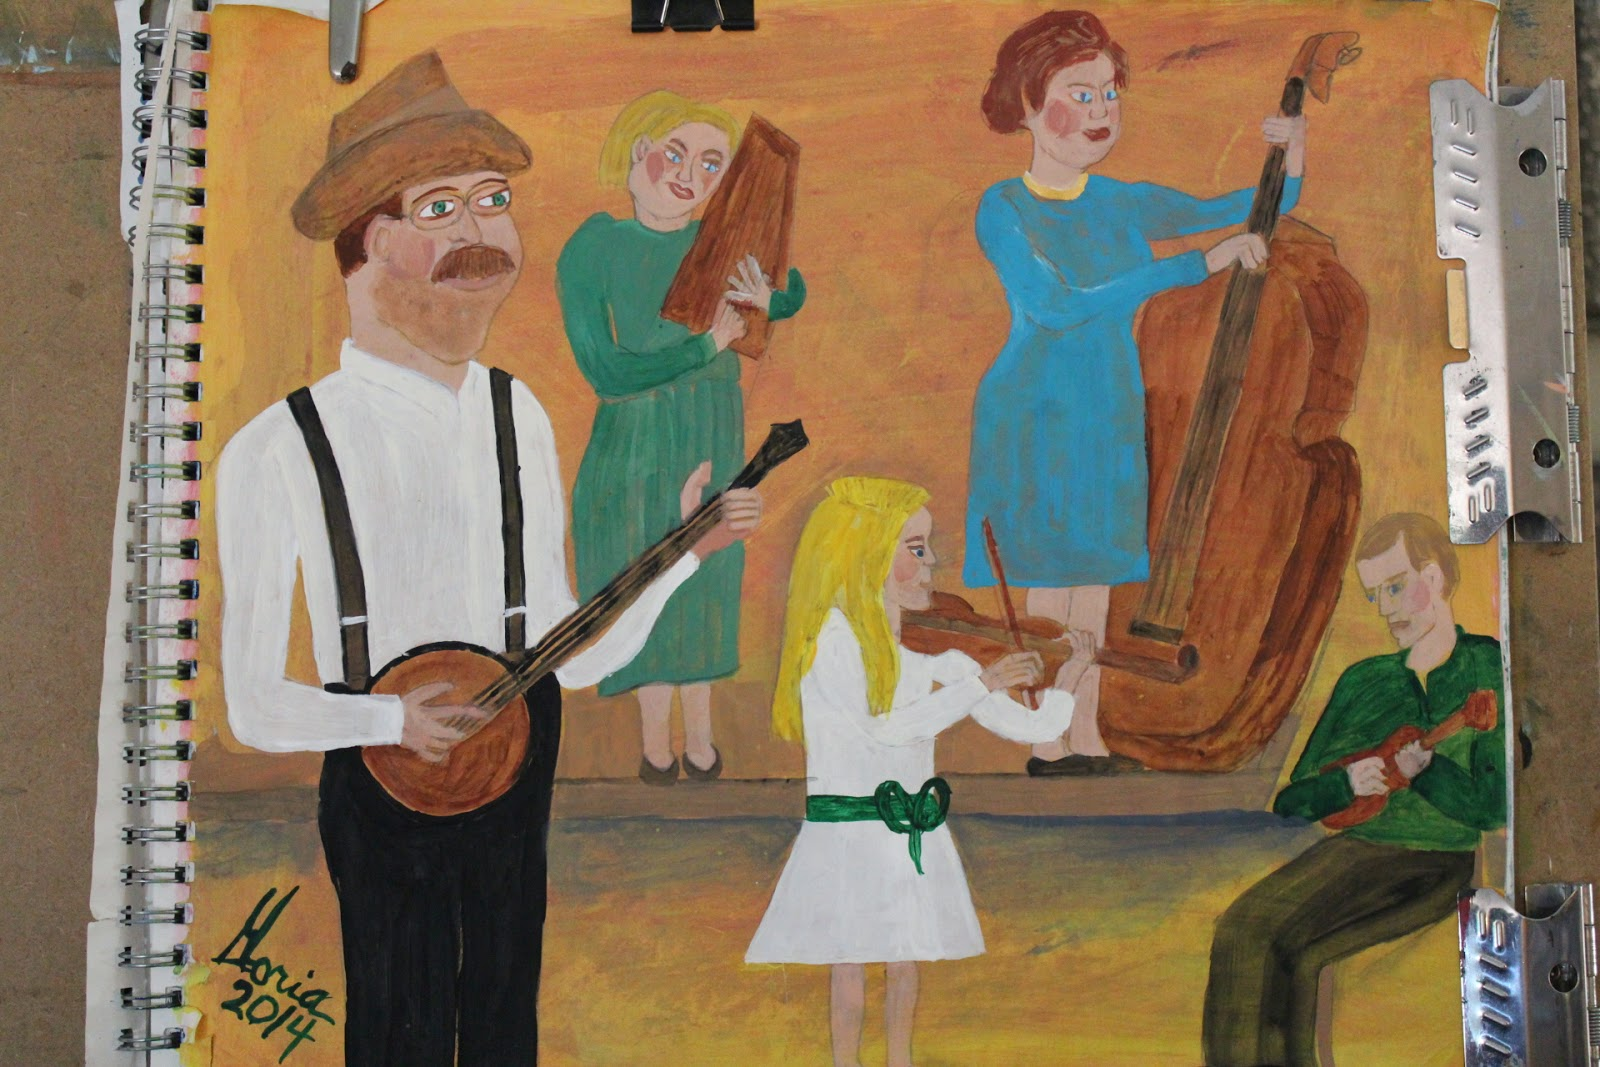 Southern Baptist Church band sketch by Gloria Poole of Missouri-11-Apr-2014; acrylics